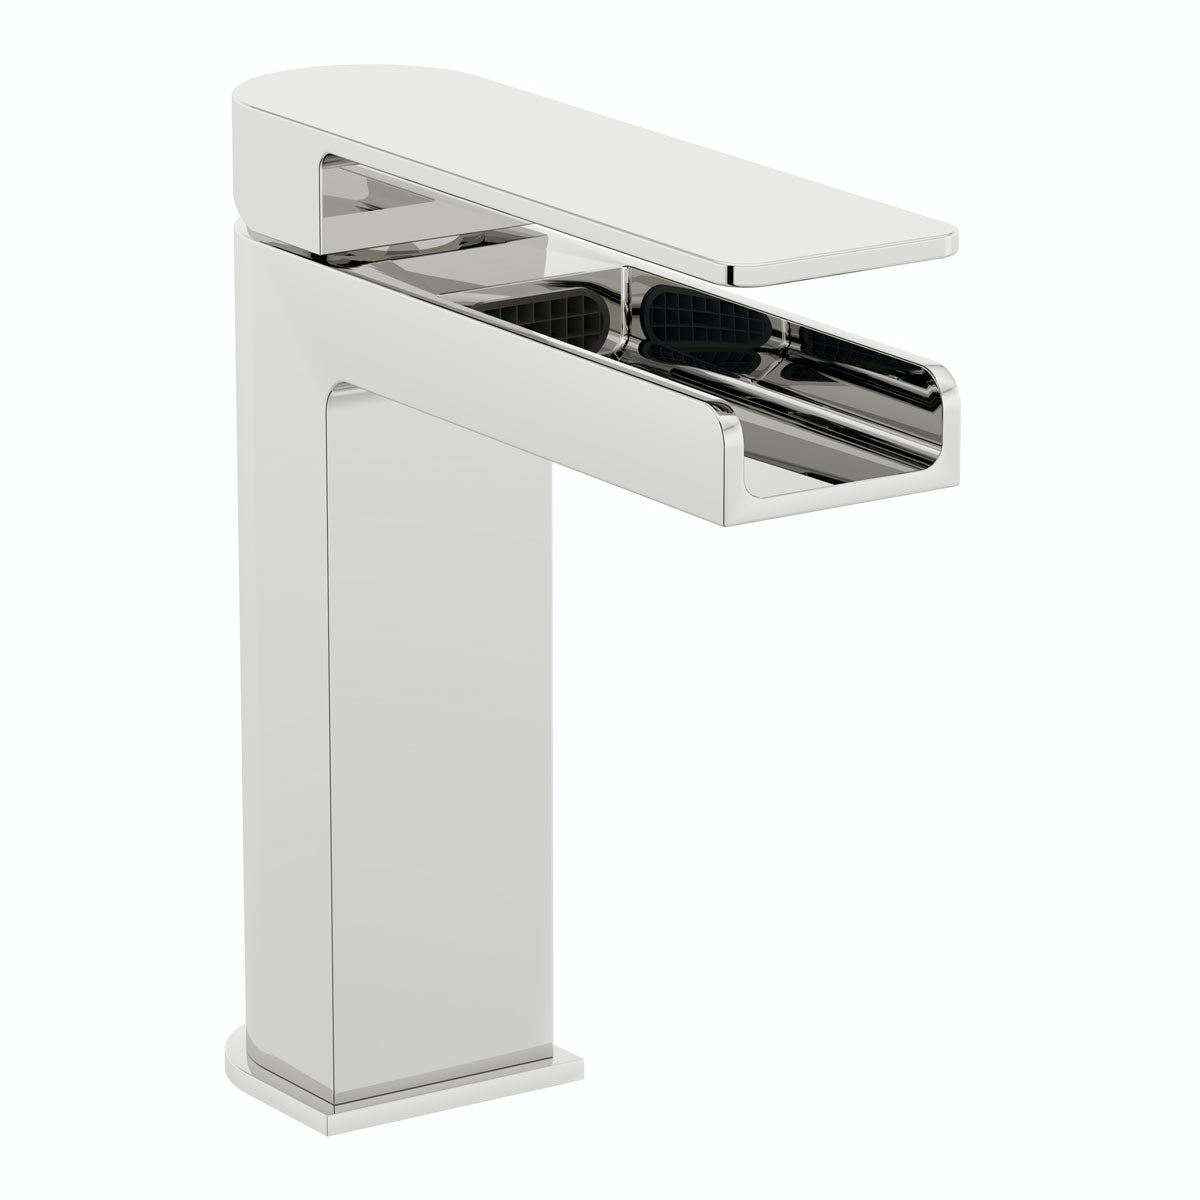 Mode Cooper basin mixer tap